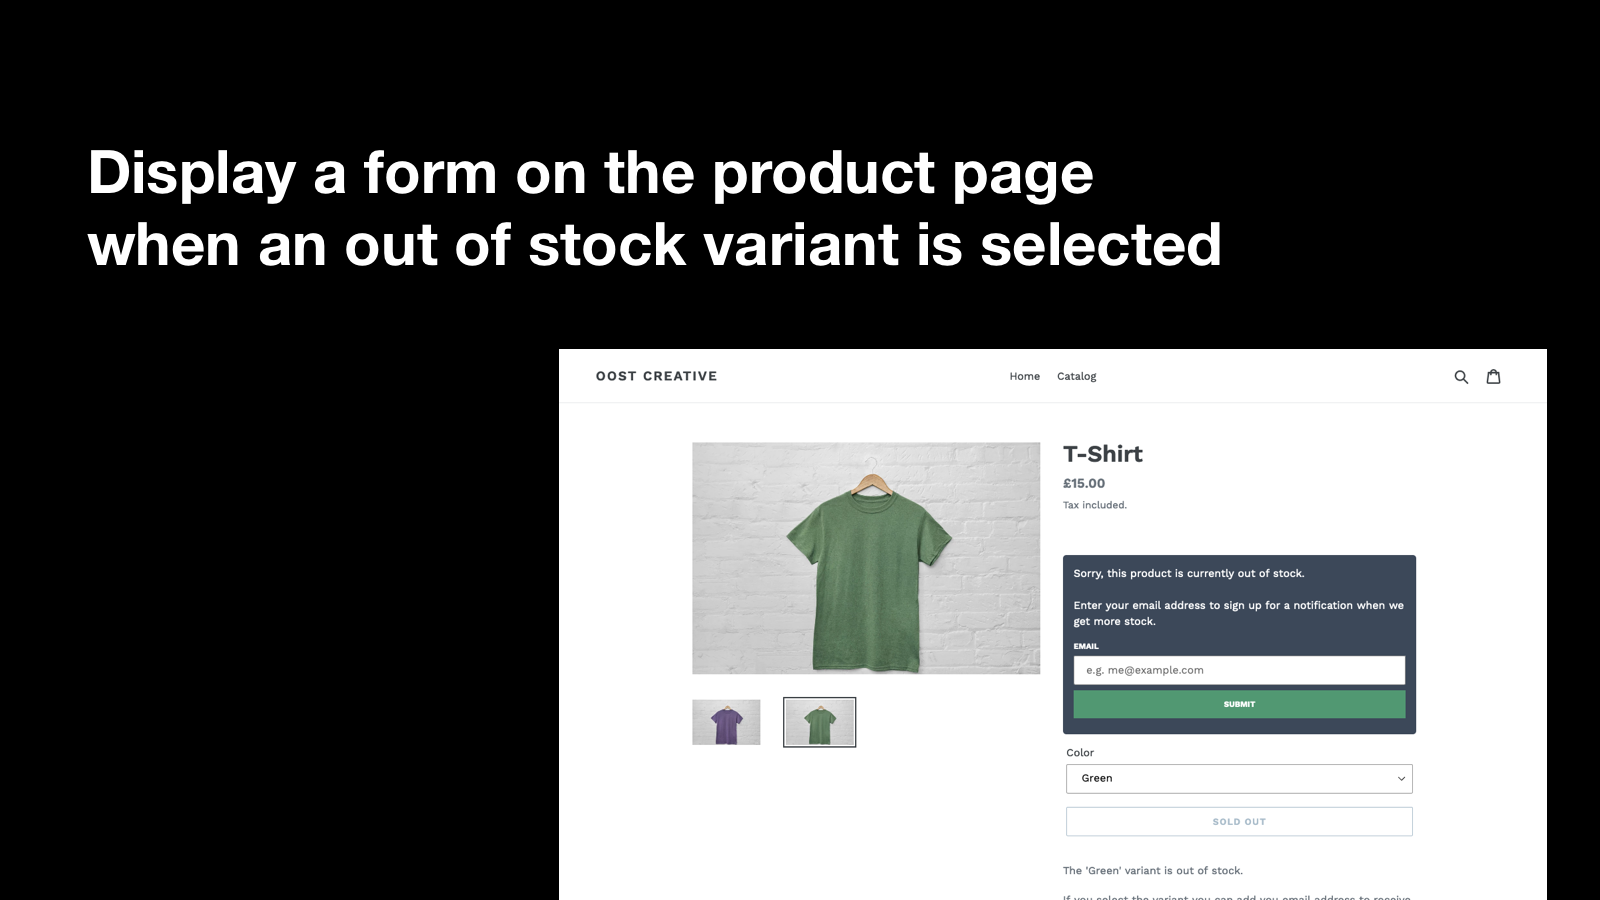 Display a form on the product page when an out of stock variant